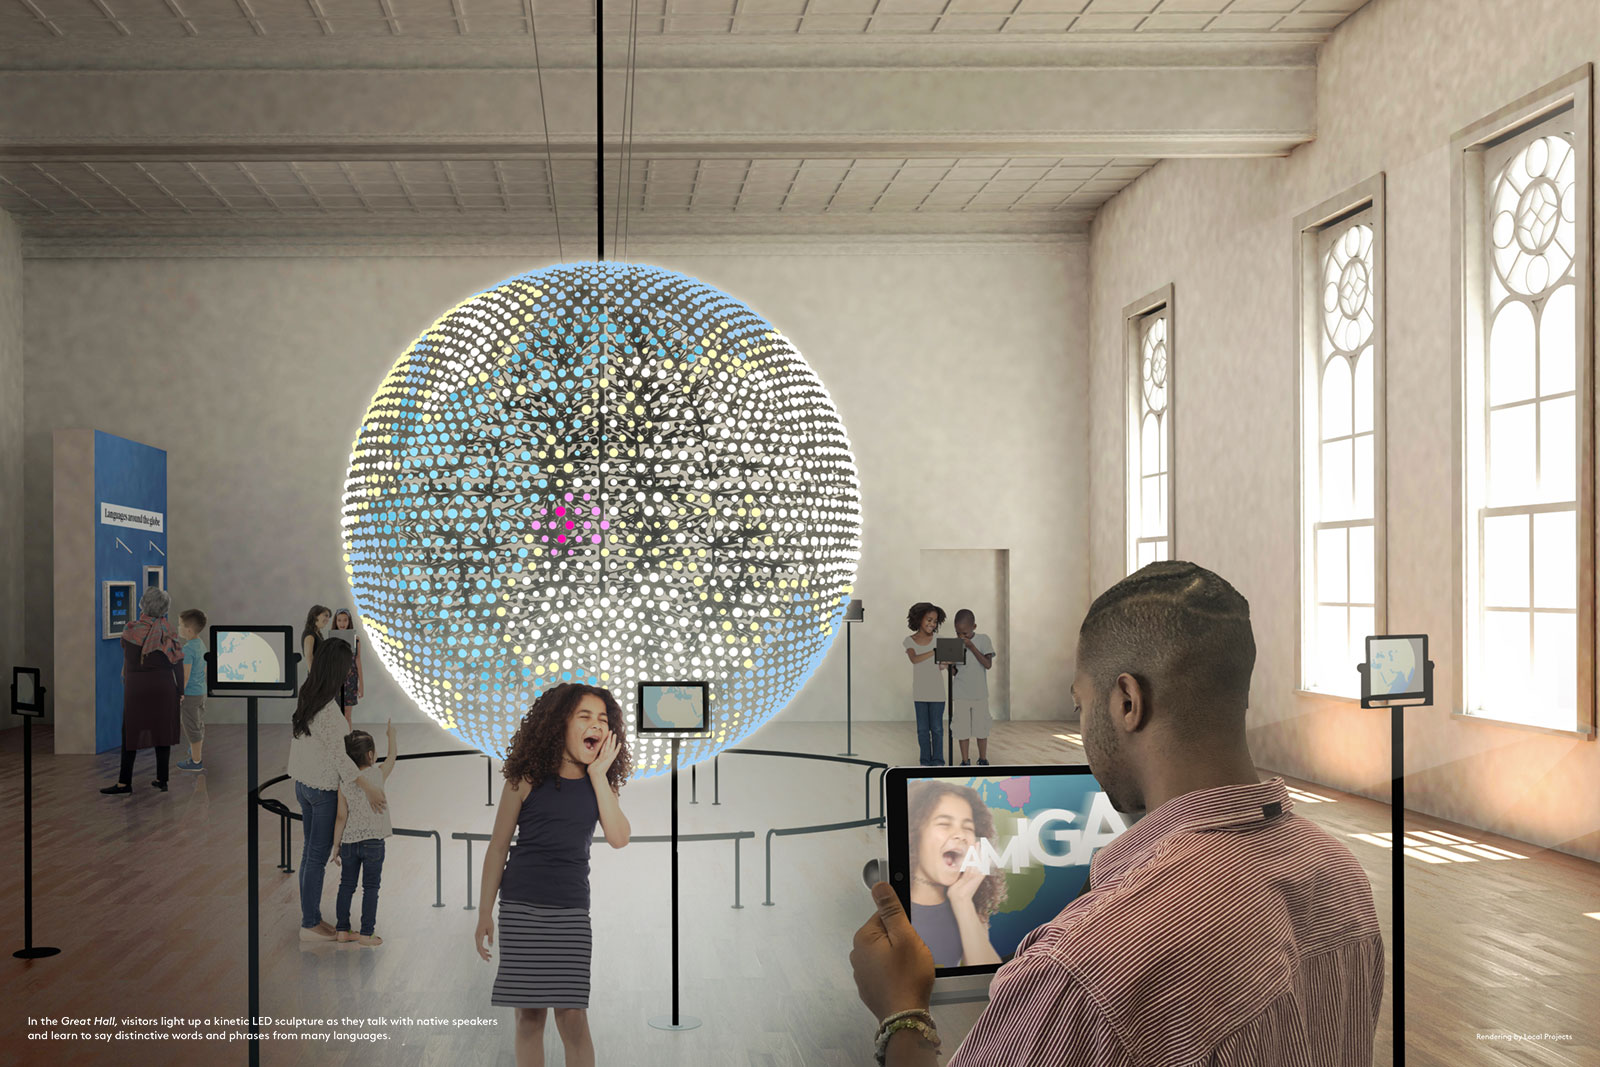 The 12-foot LED globe serves as a centerpiece for The Spoken World.